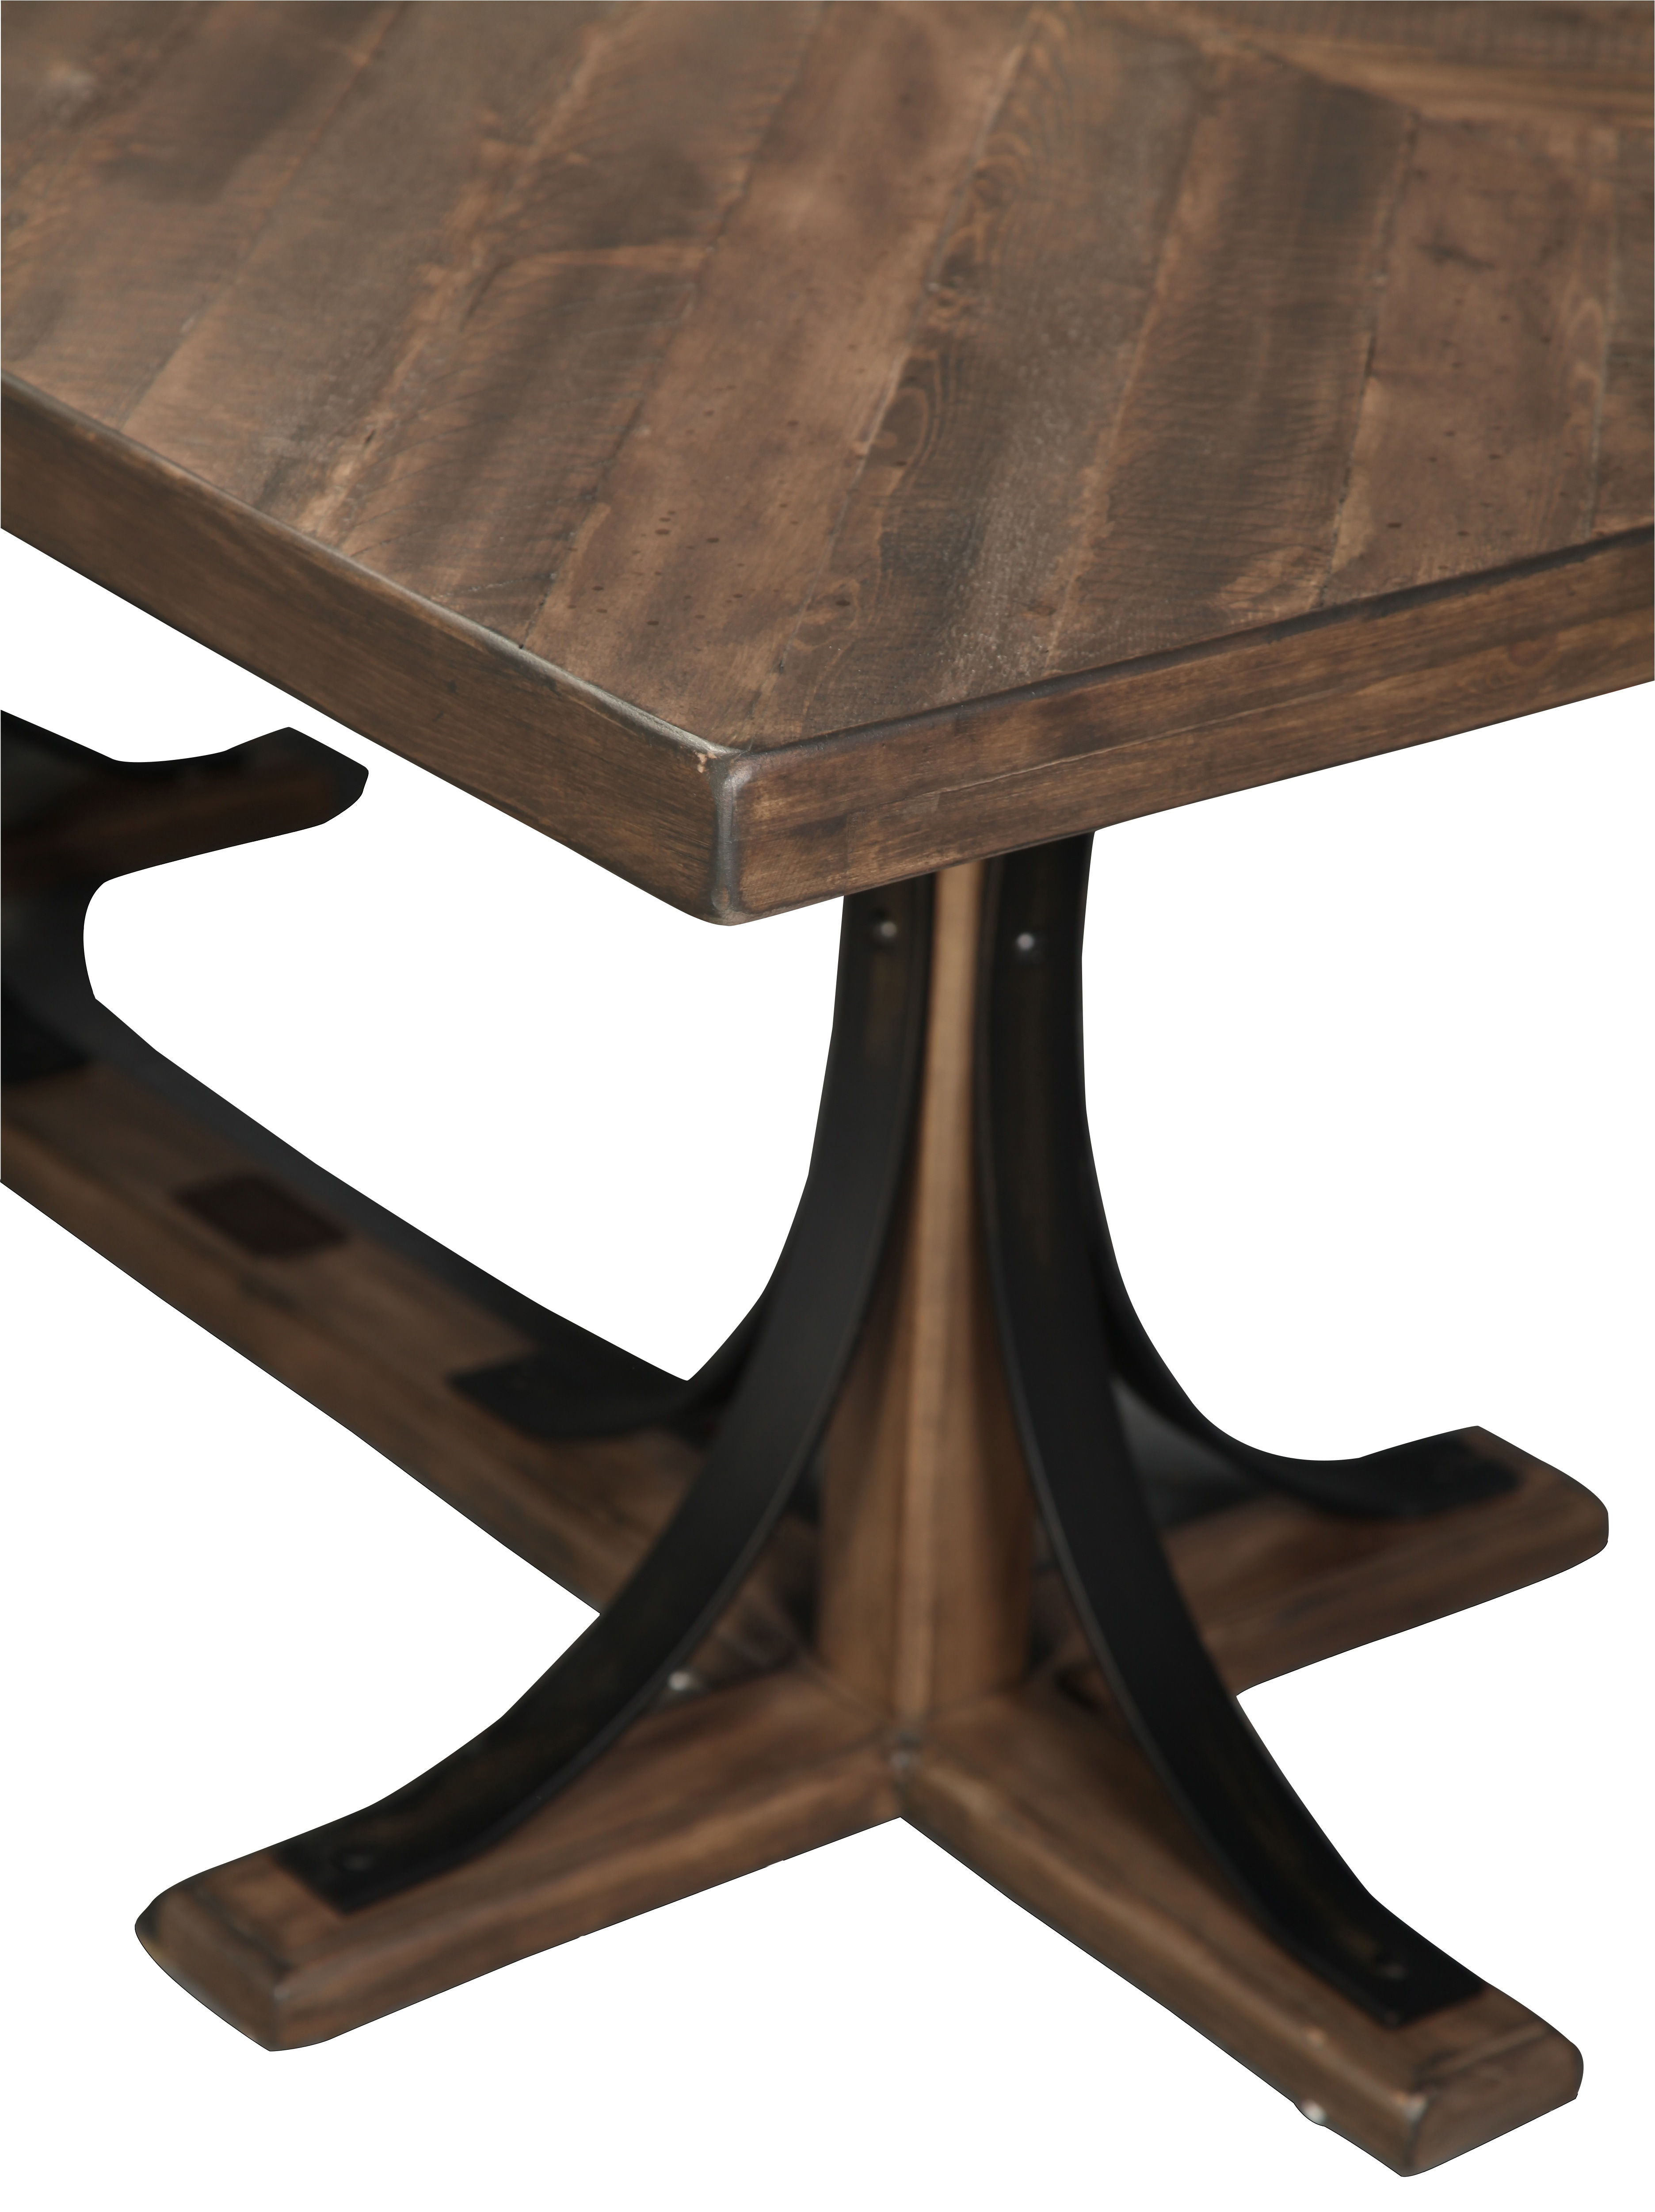 Widely Used Magnolia Home Iron Trestle Cocktail Tables Throughout Magnolia Home Traditional Iron Trestle Table (View 4 of 20)